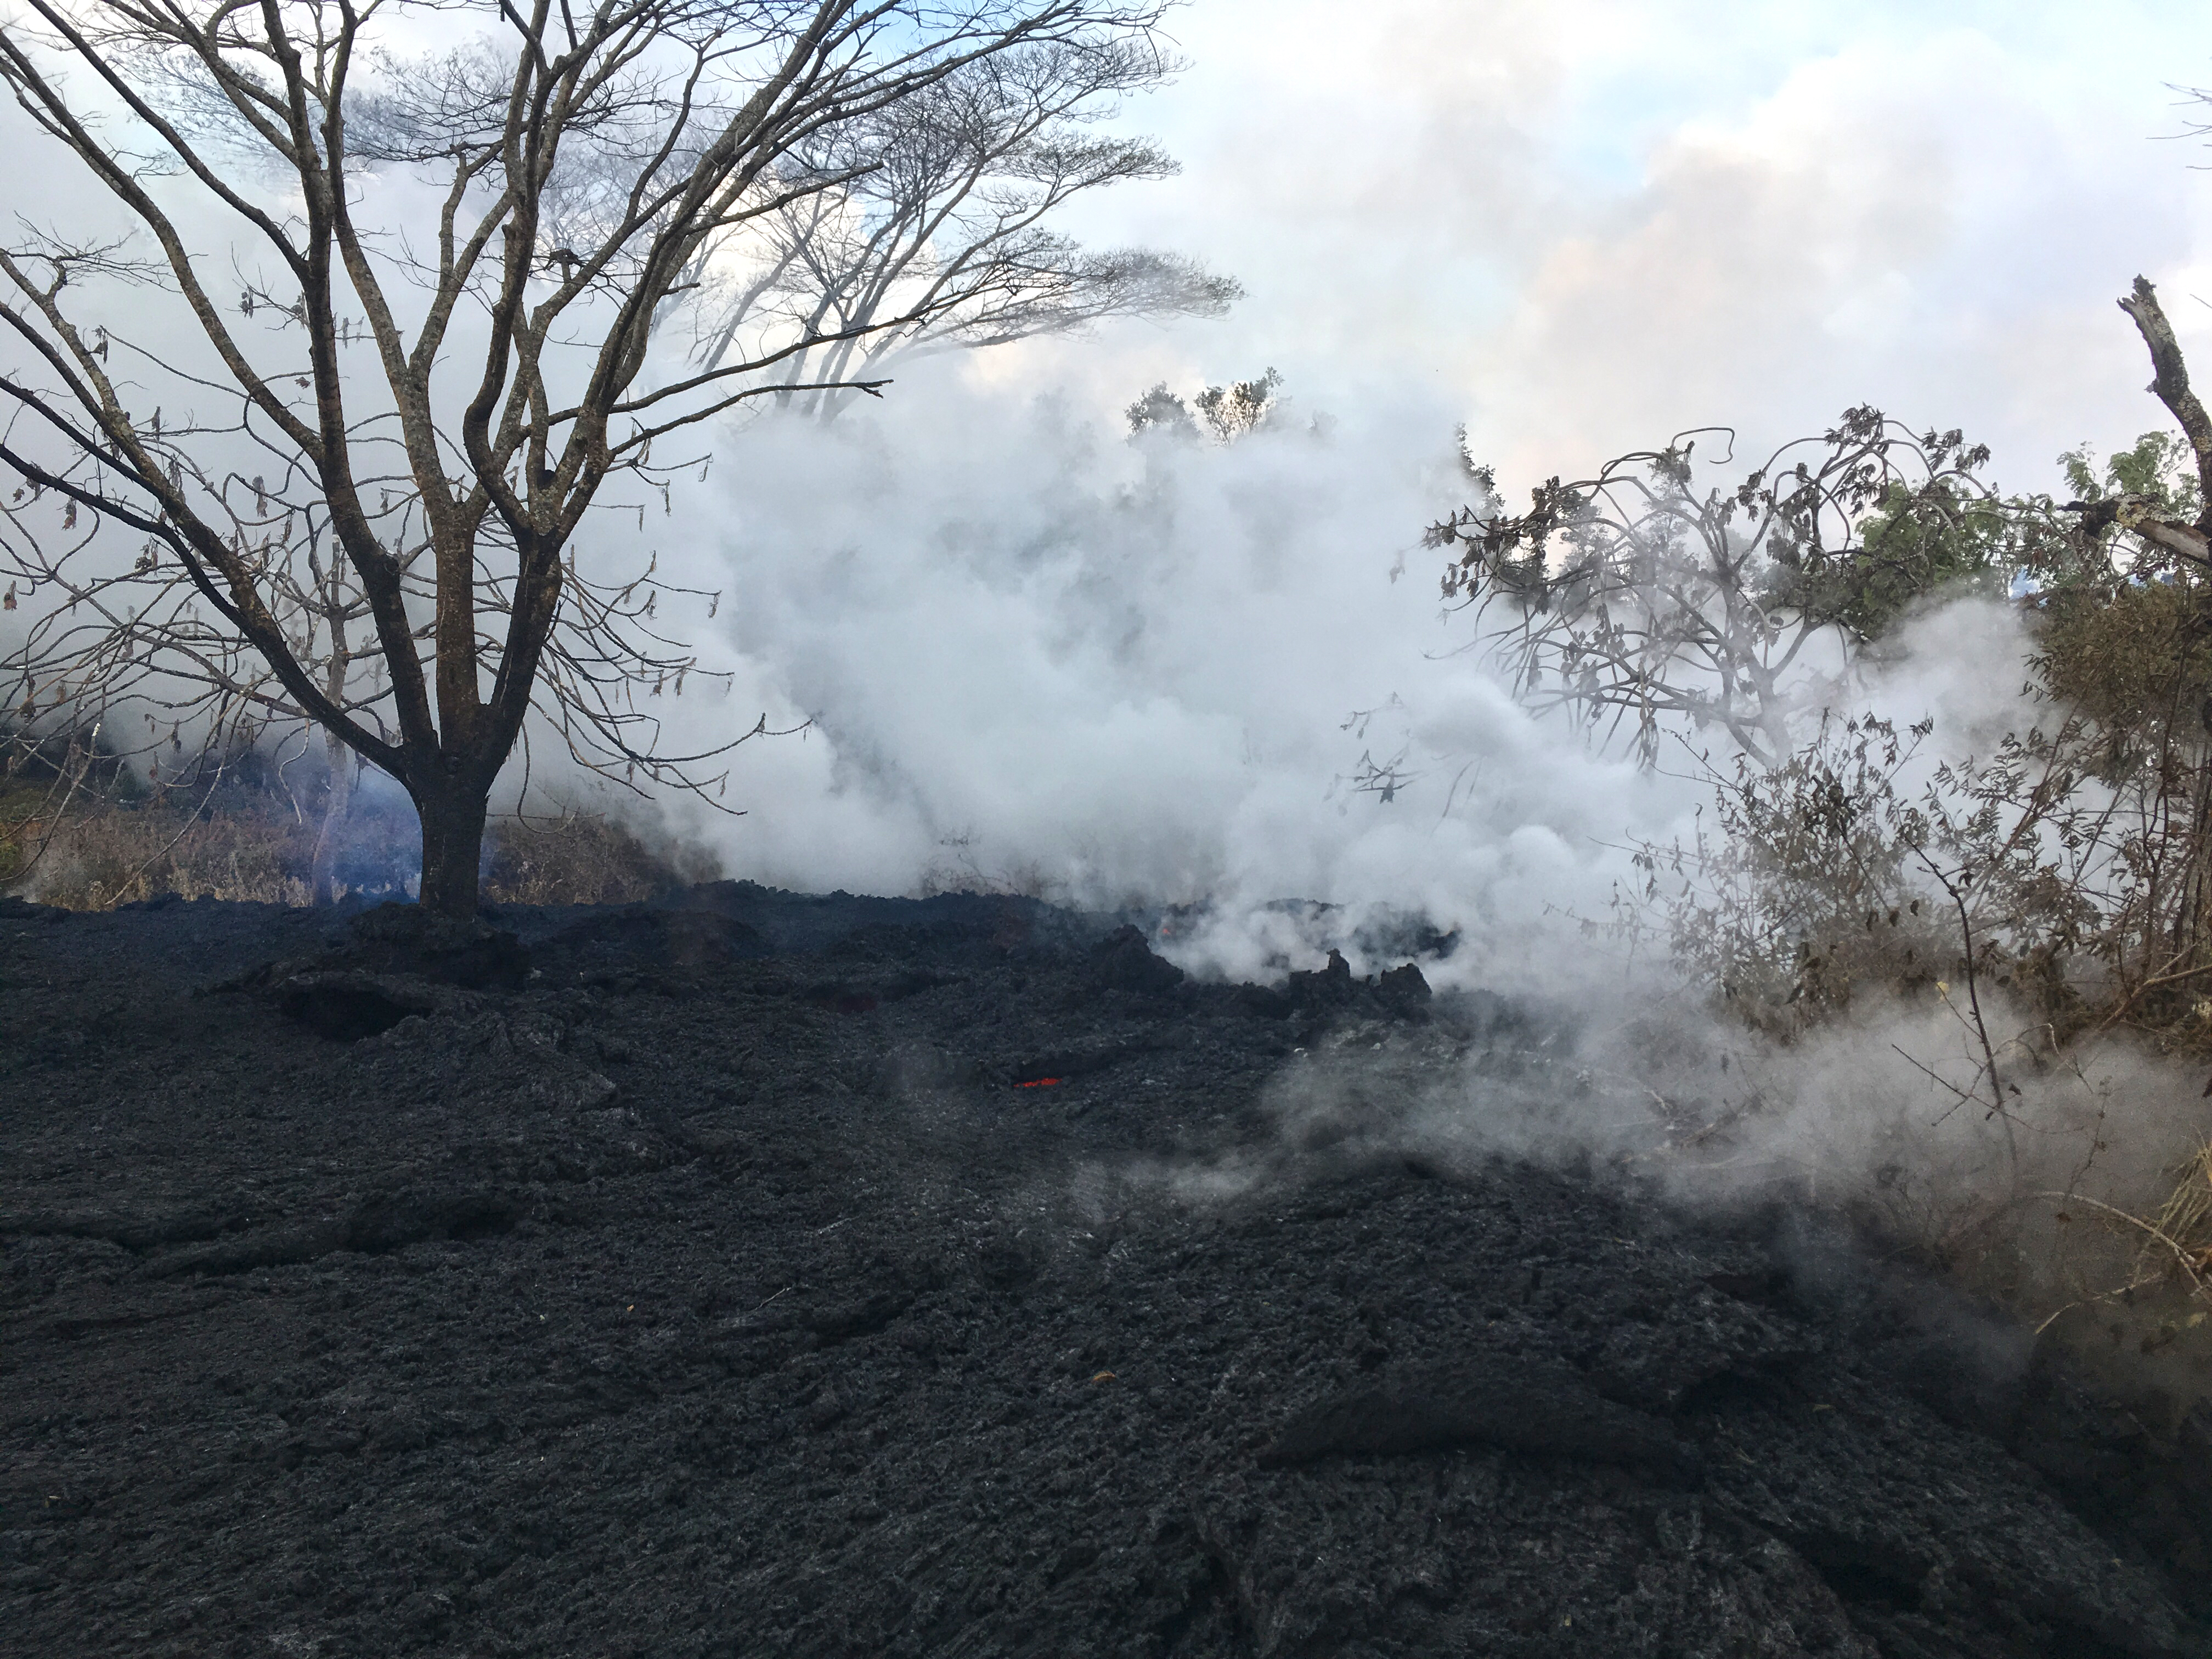 Kilauea erupts, sending ash 30000 feet high